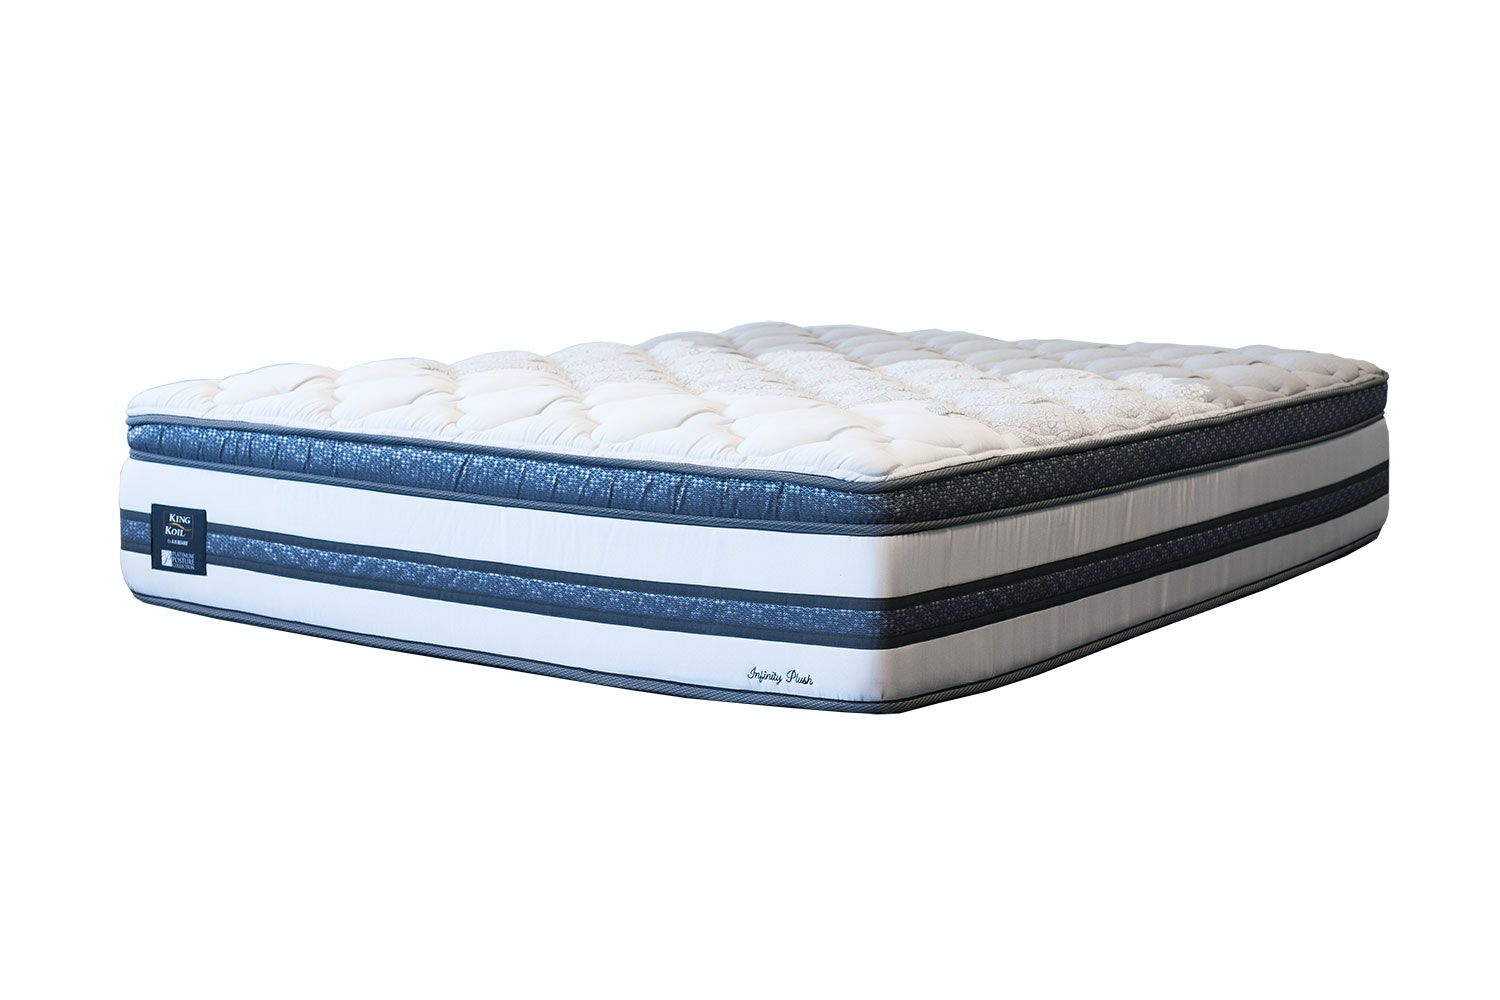 Infinity Plush Double Mattress by King Koil